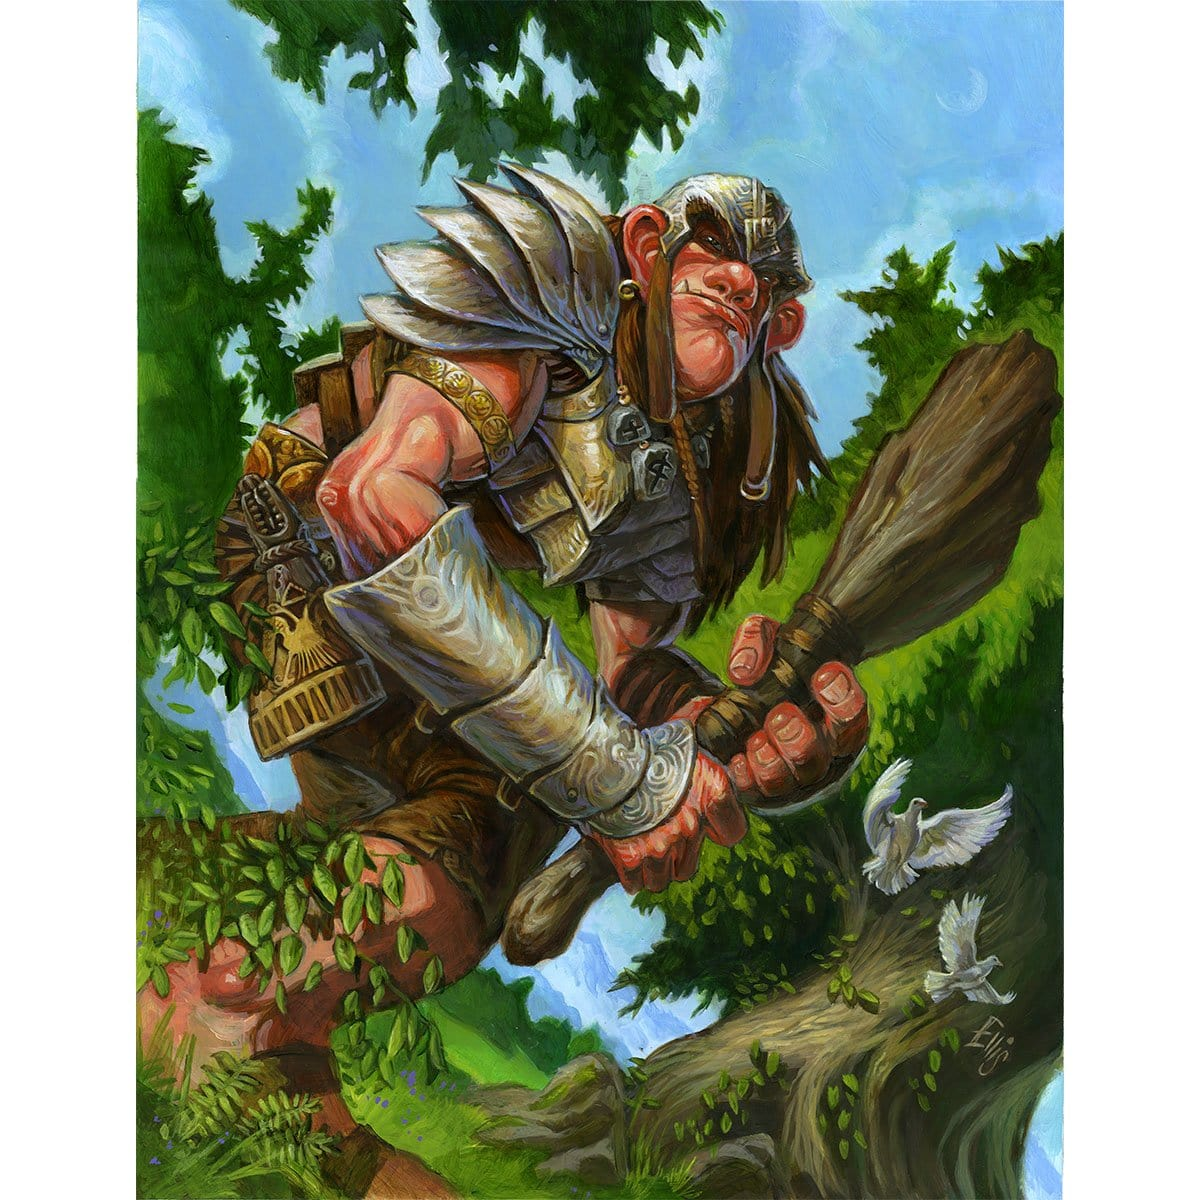 Giant Warrior Token Print - Print - Original Magic Art - Accessories for Magic the Gathering and other card games